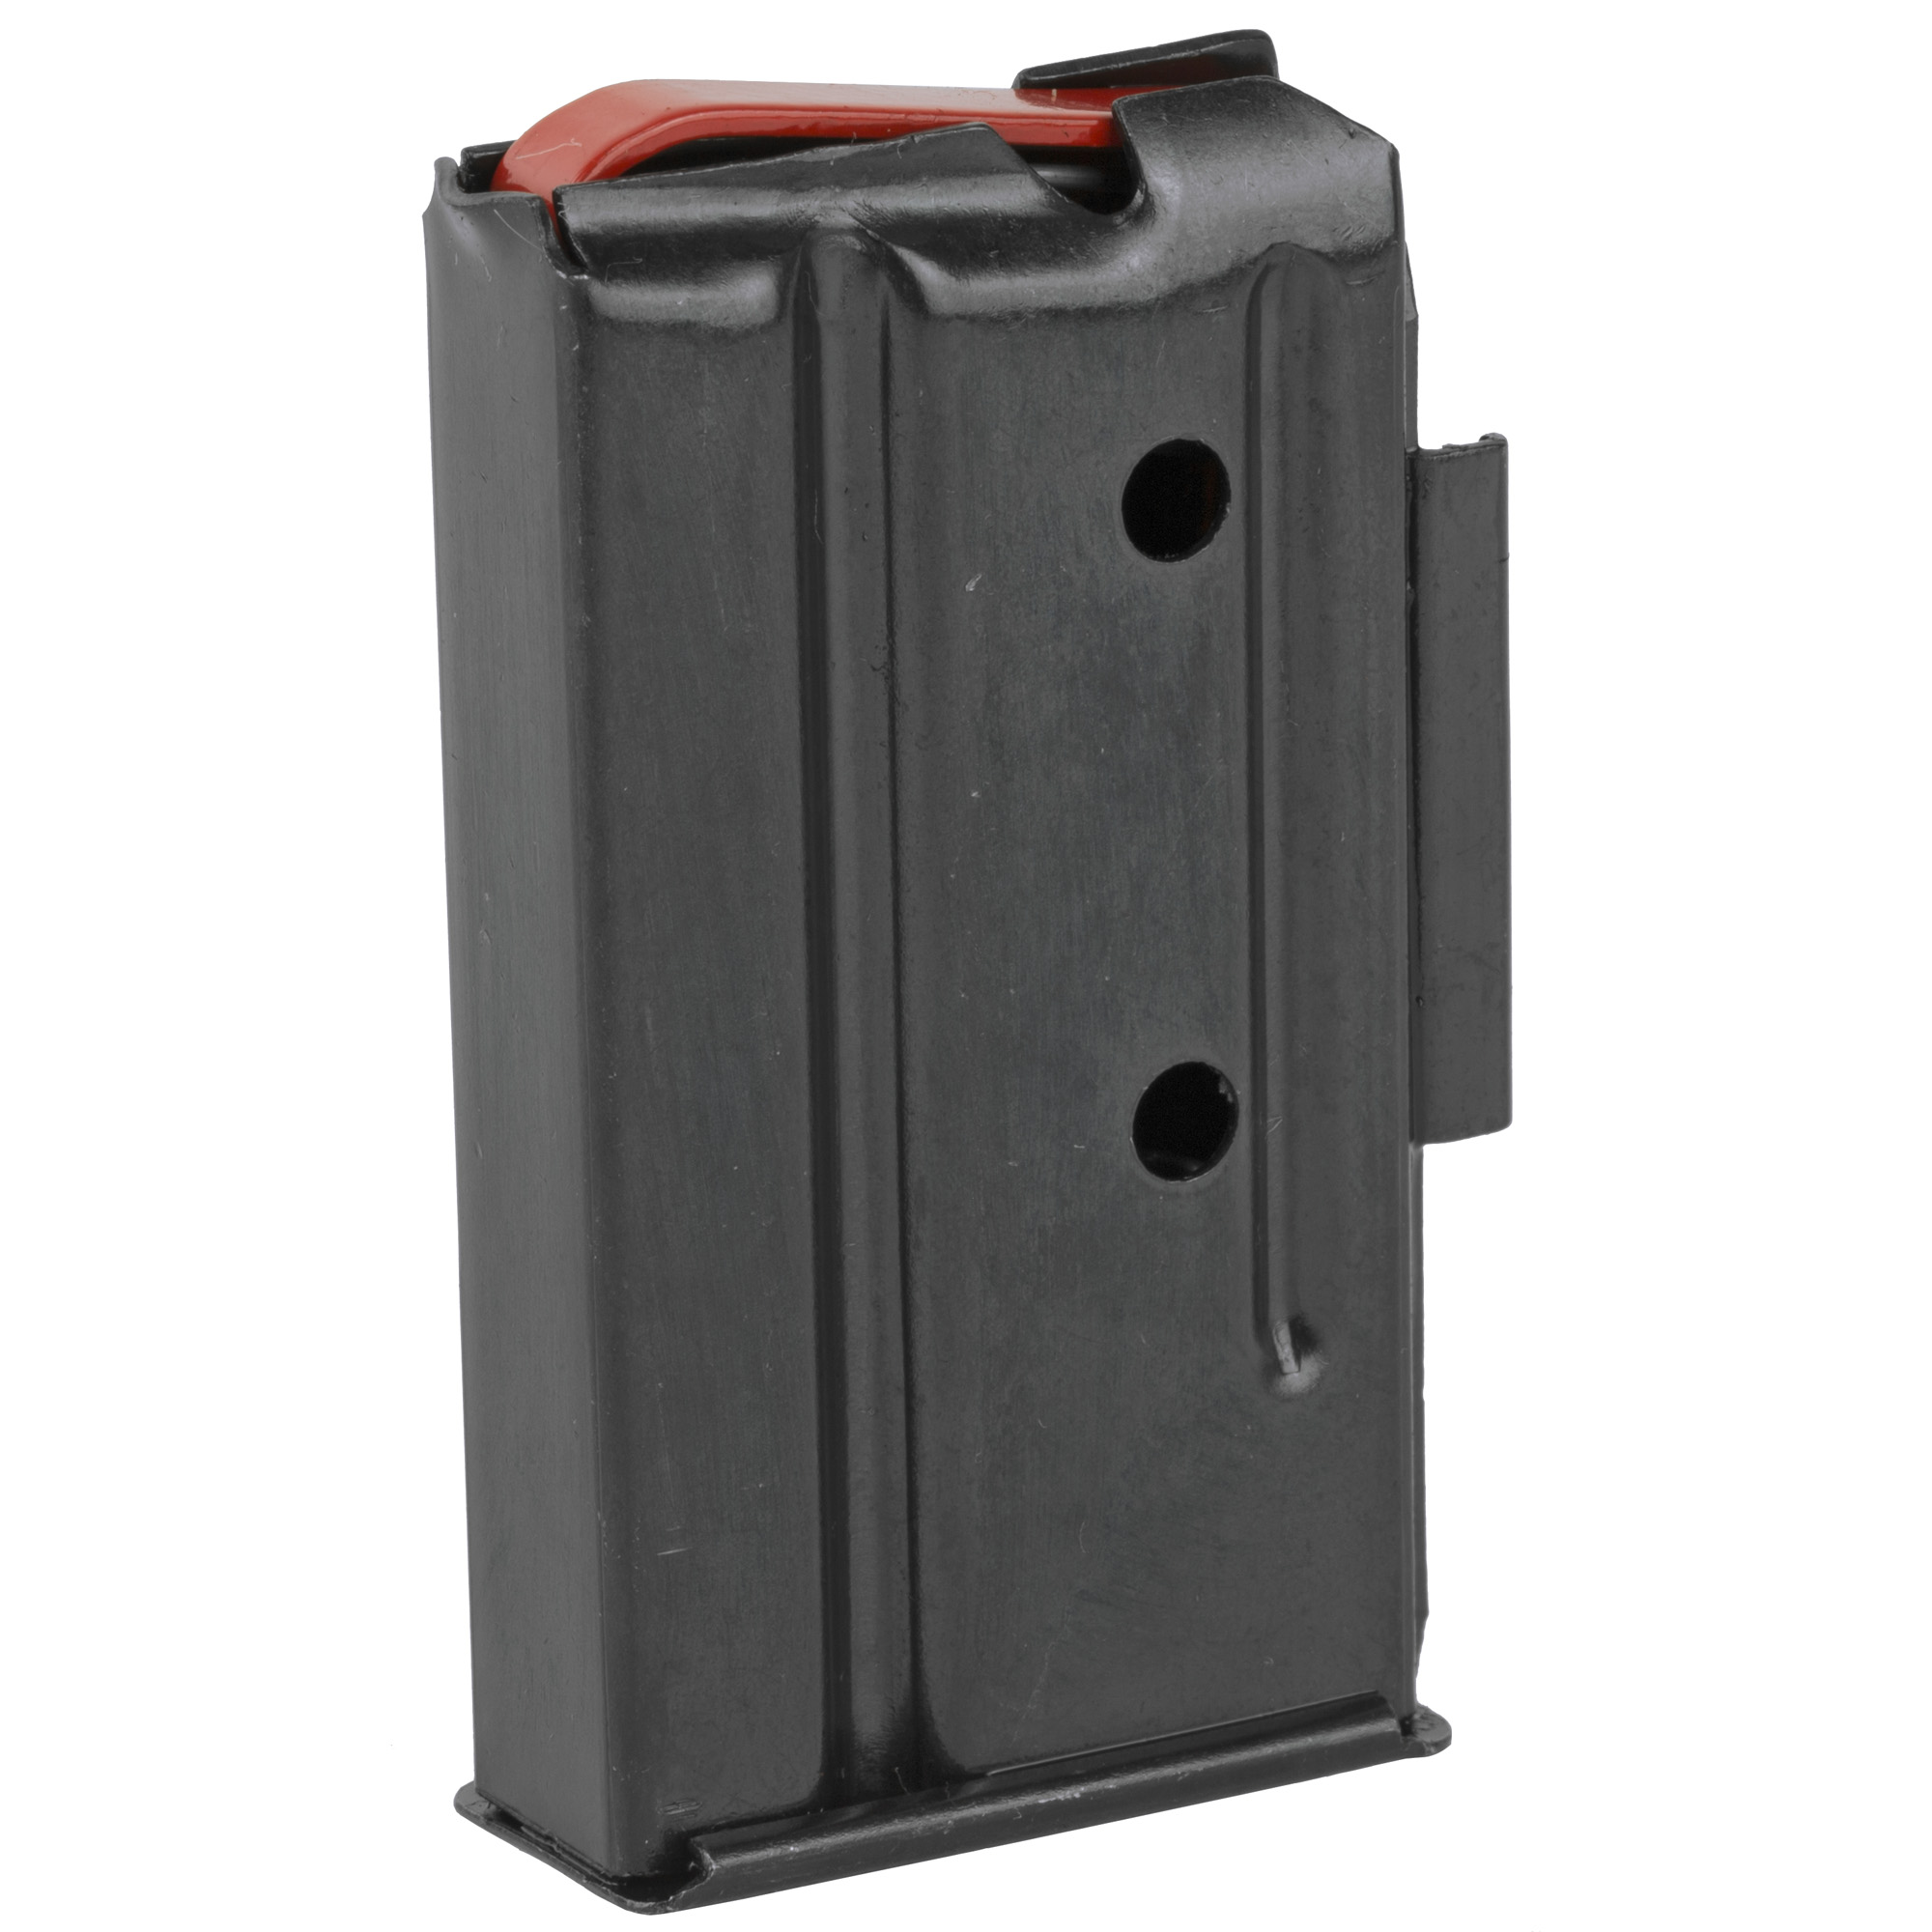 This Marlin factory magazine features durable steel construction that will ensure a lifetime of flawless function and reliability.